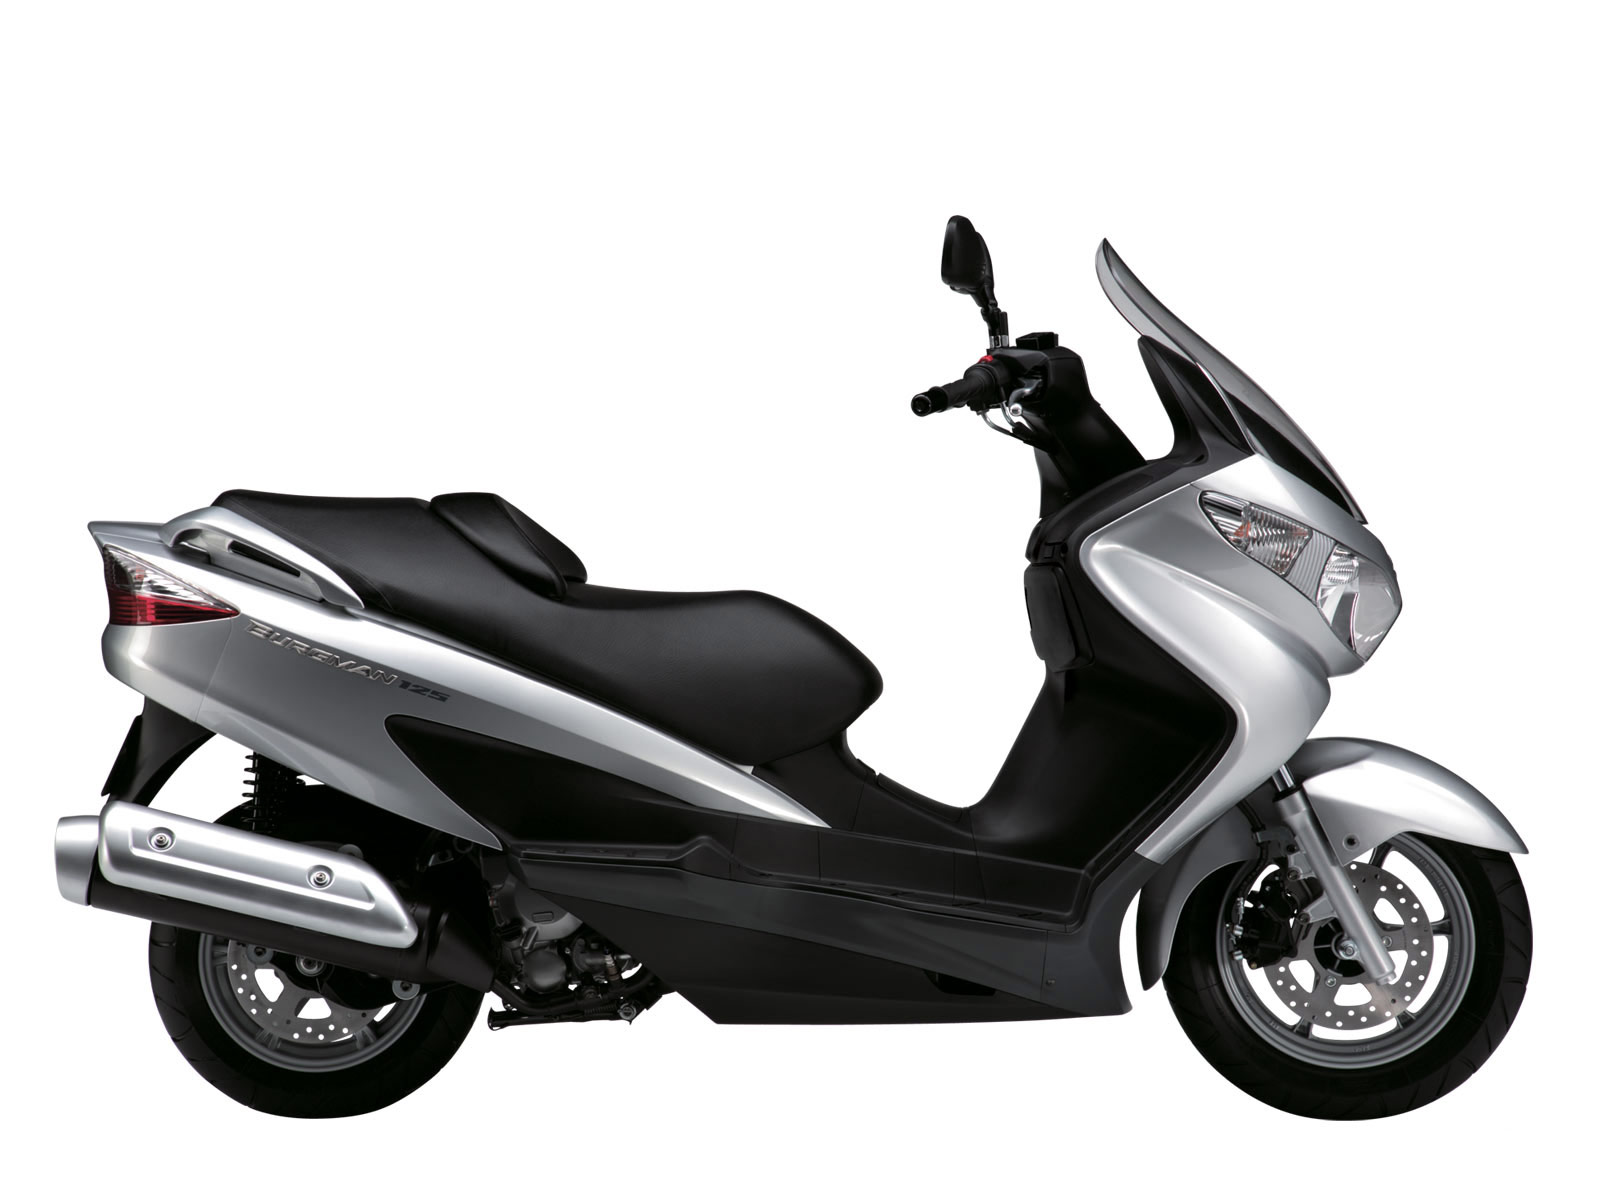 2007 suzuki an burgman 125 scooter pictures specifications. Black Bedroom Furniture Sets. Home Design Ideas